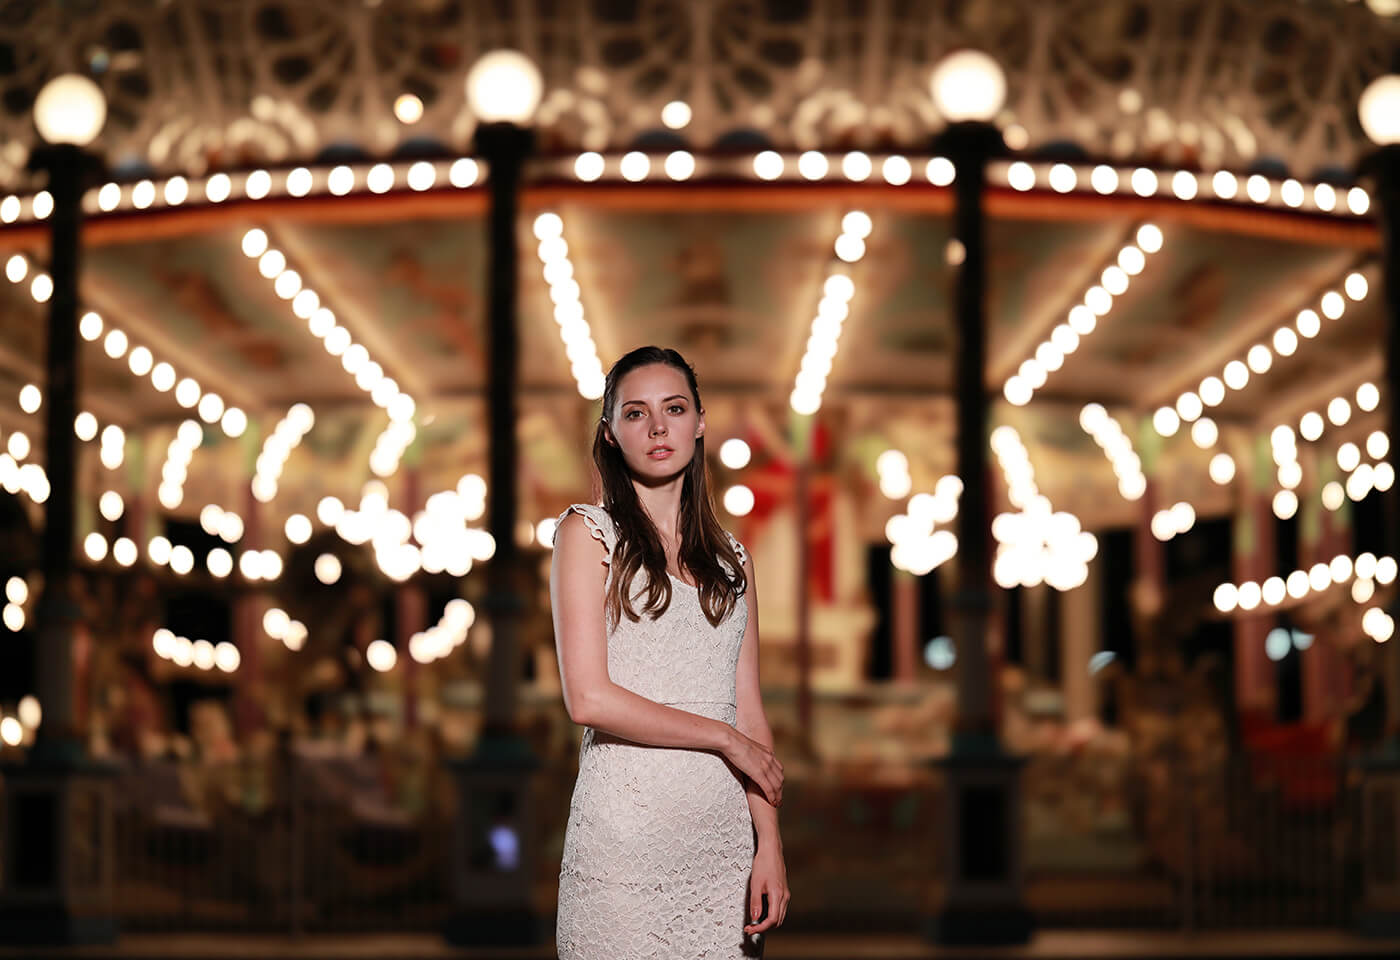 Model in front of carousel taken using RF 85mm f/1.2L USM DS prime lens